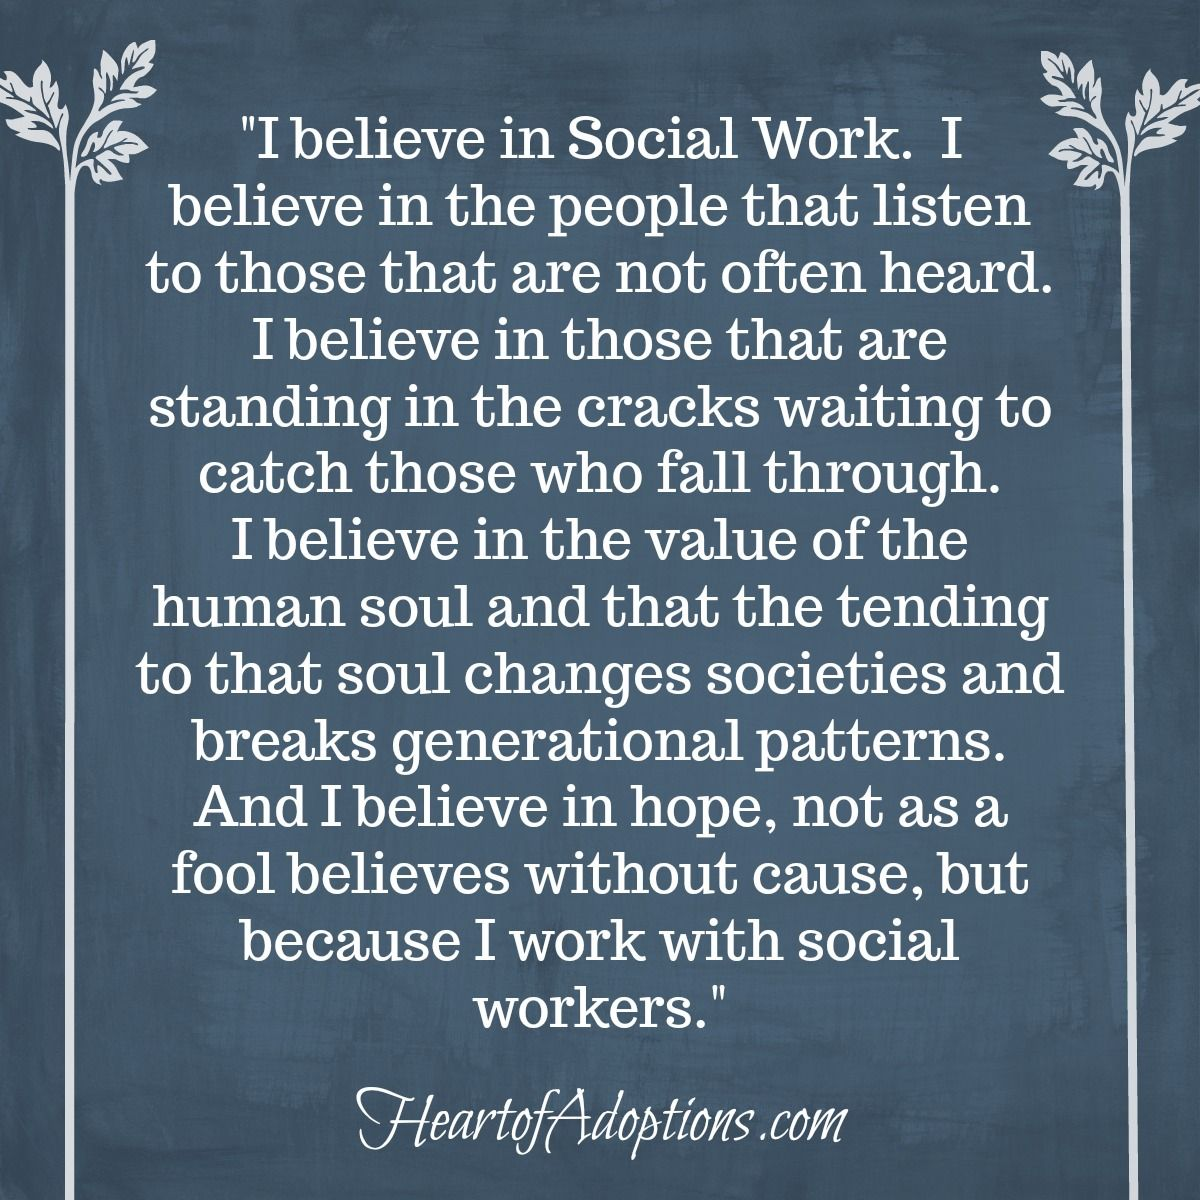 We had a great Social Work month last month! But around